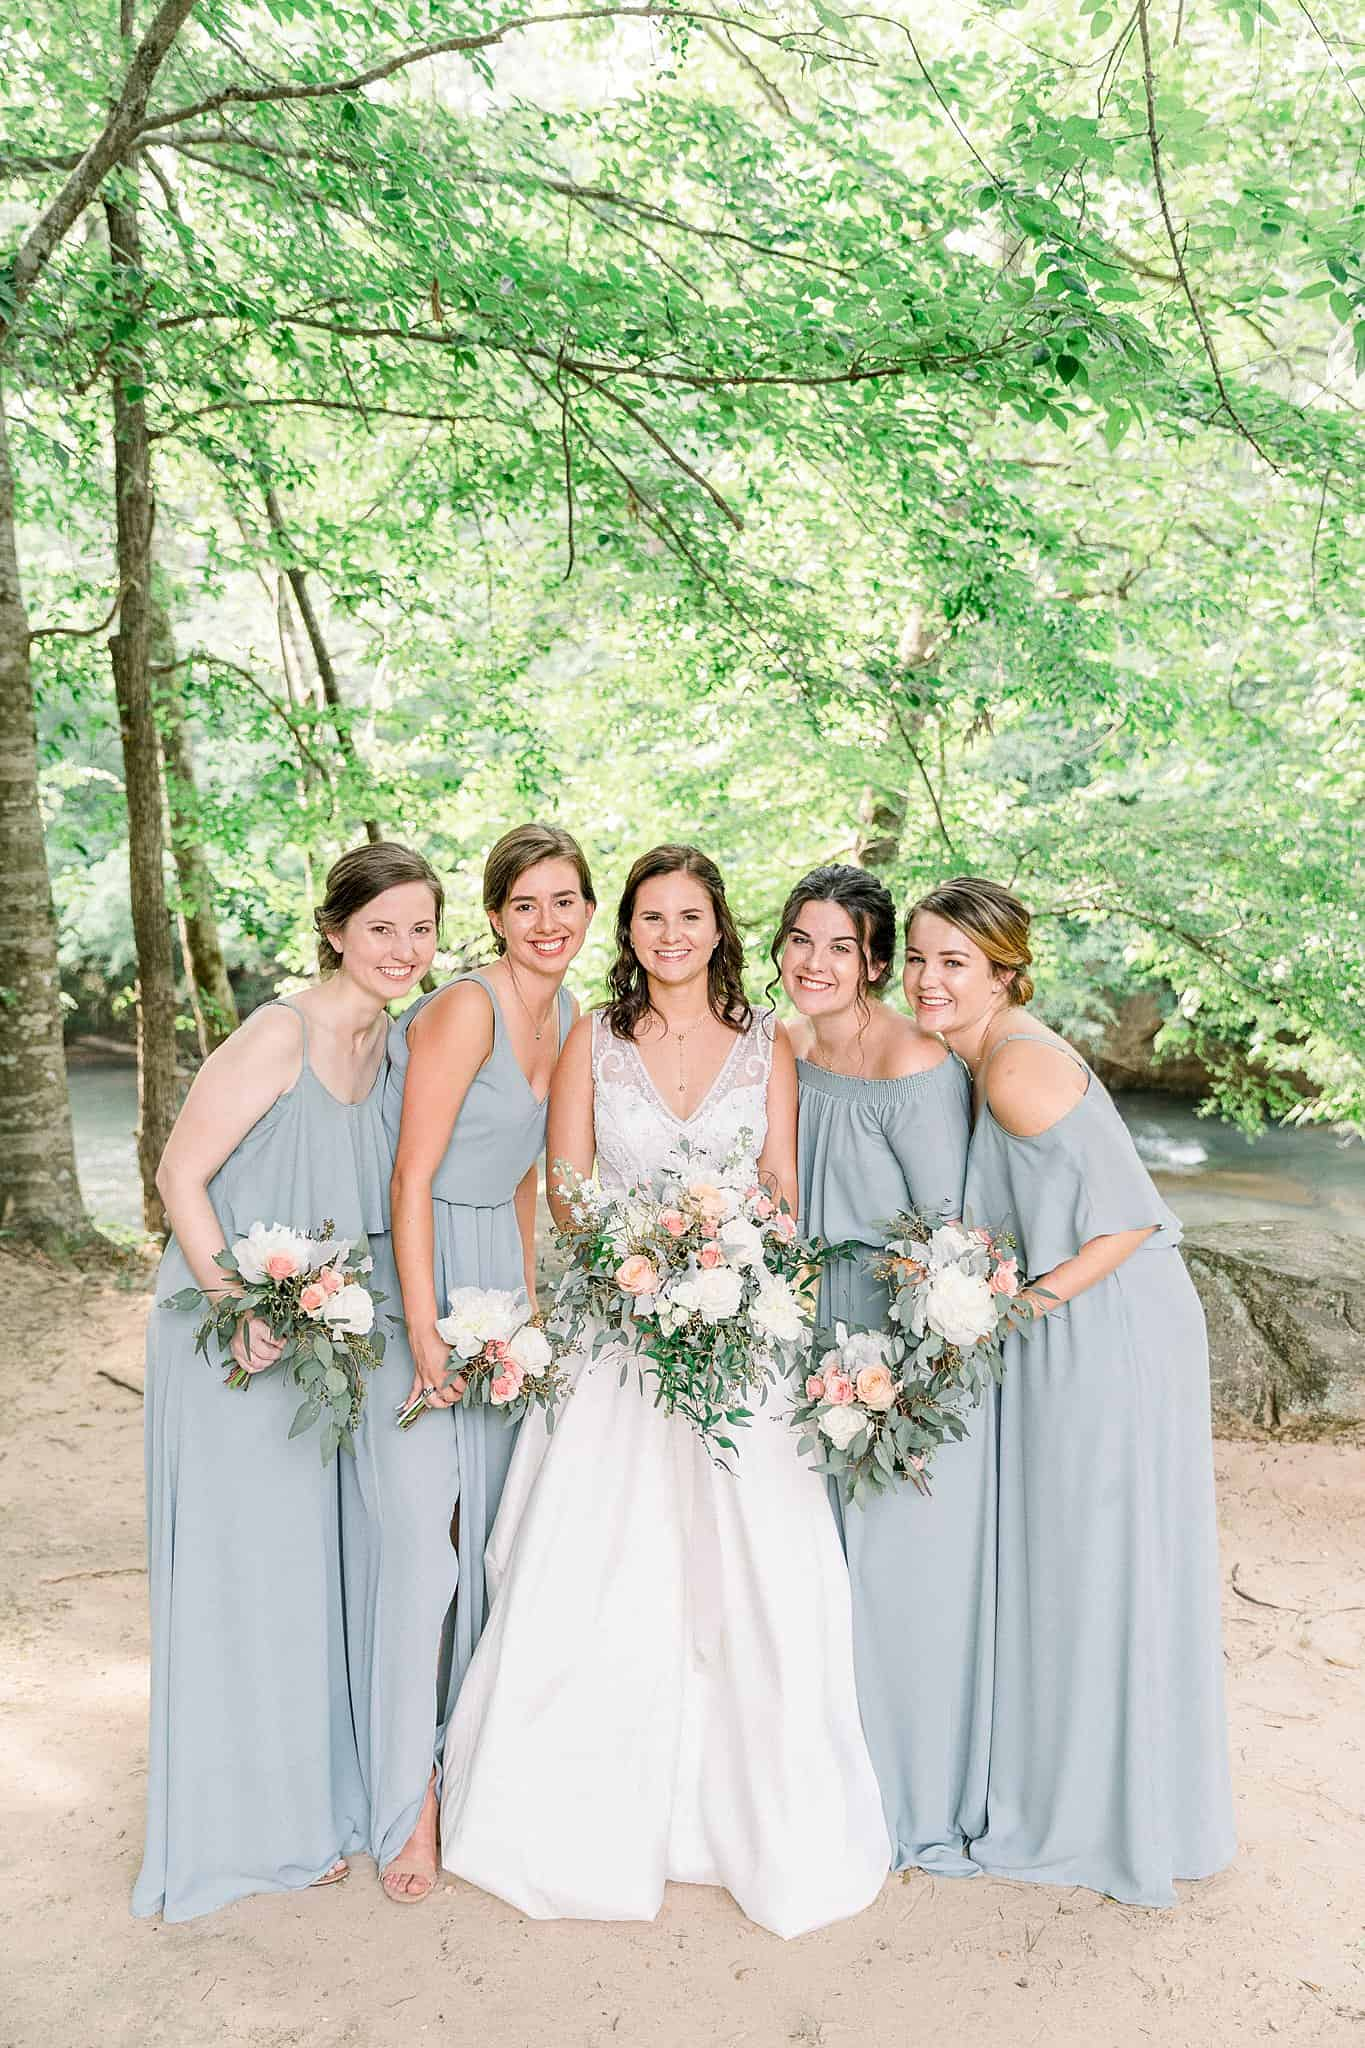 Bridesmaids in light gray gowns